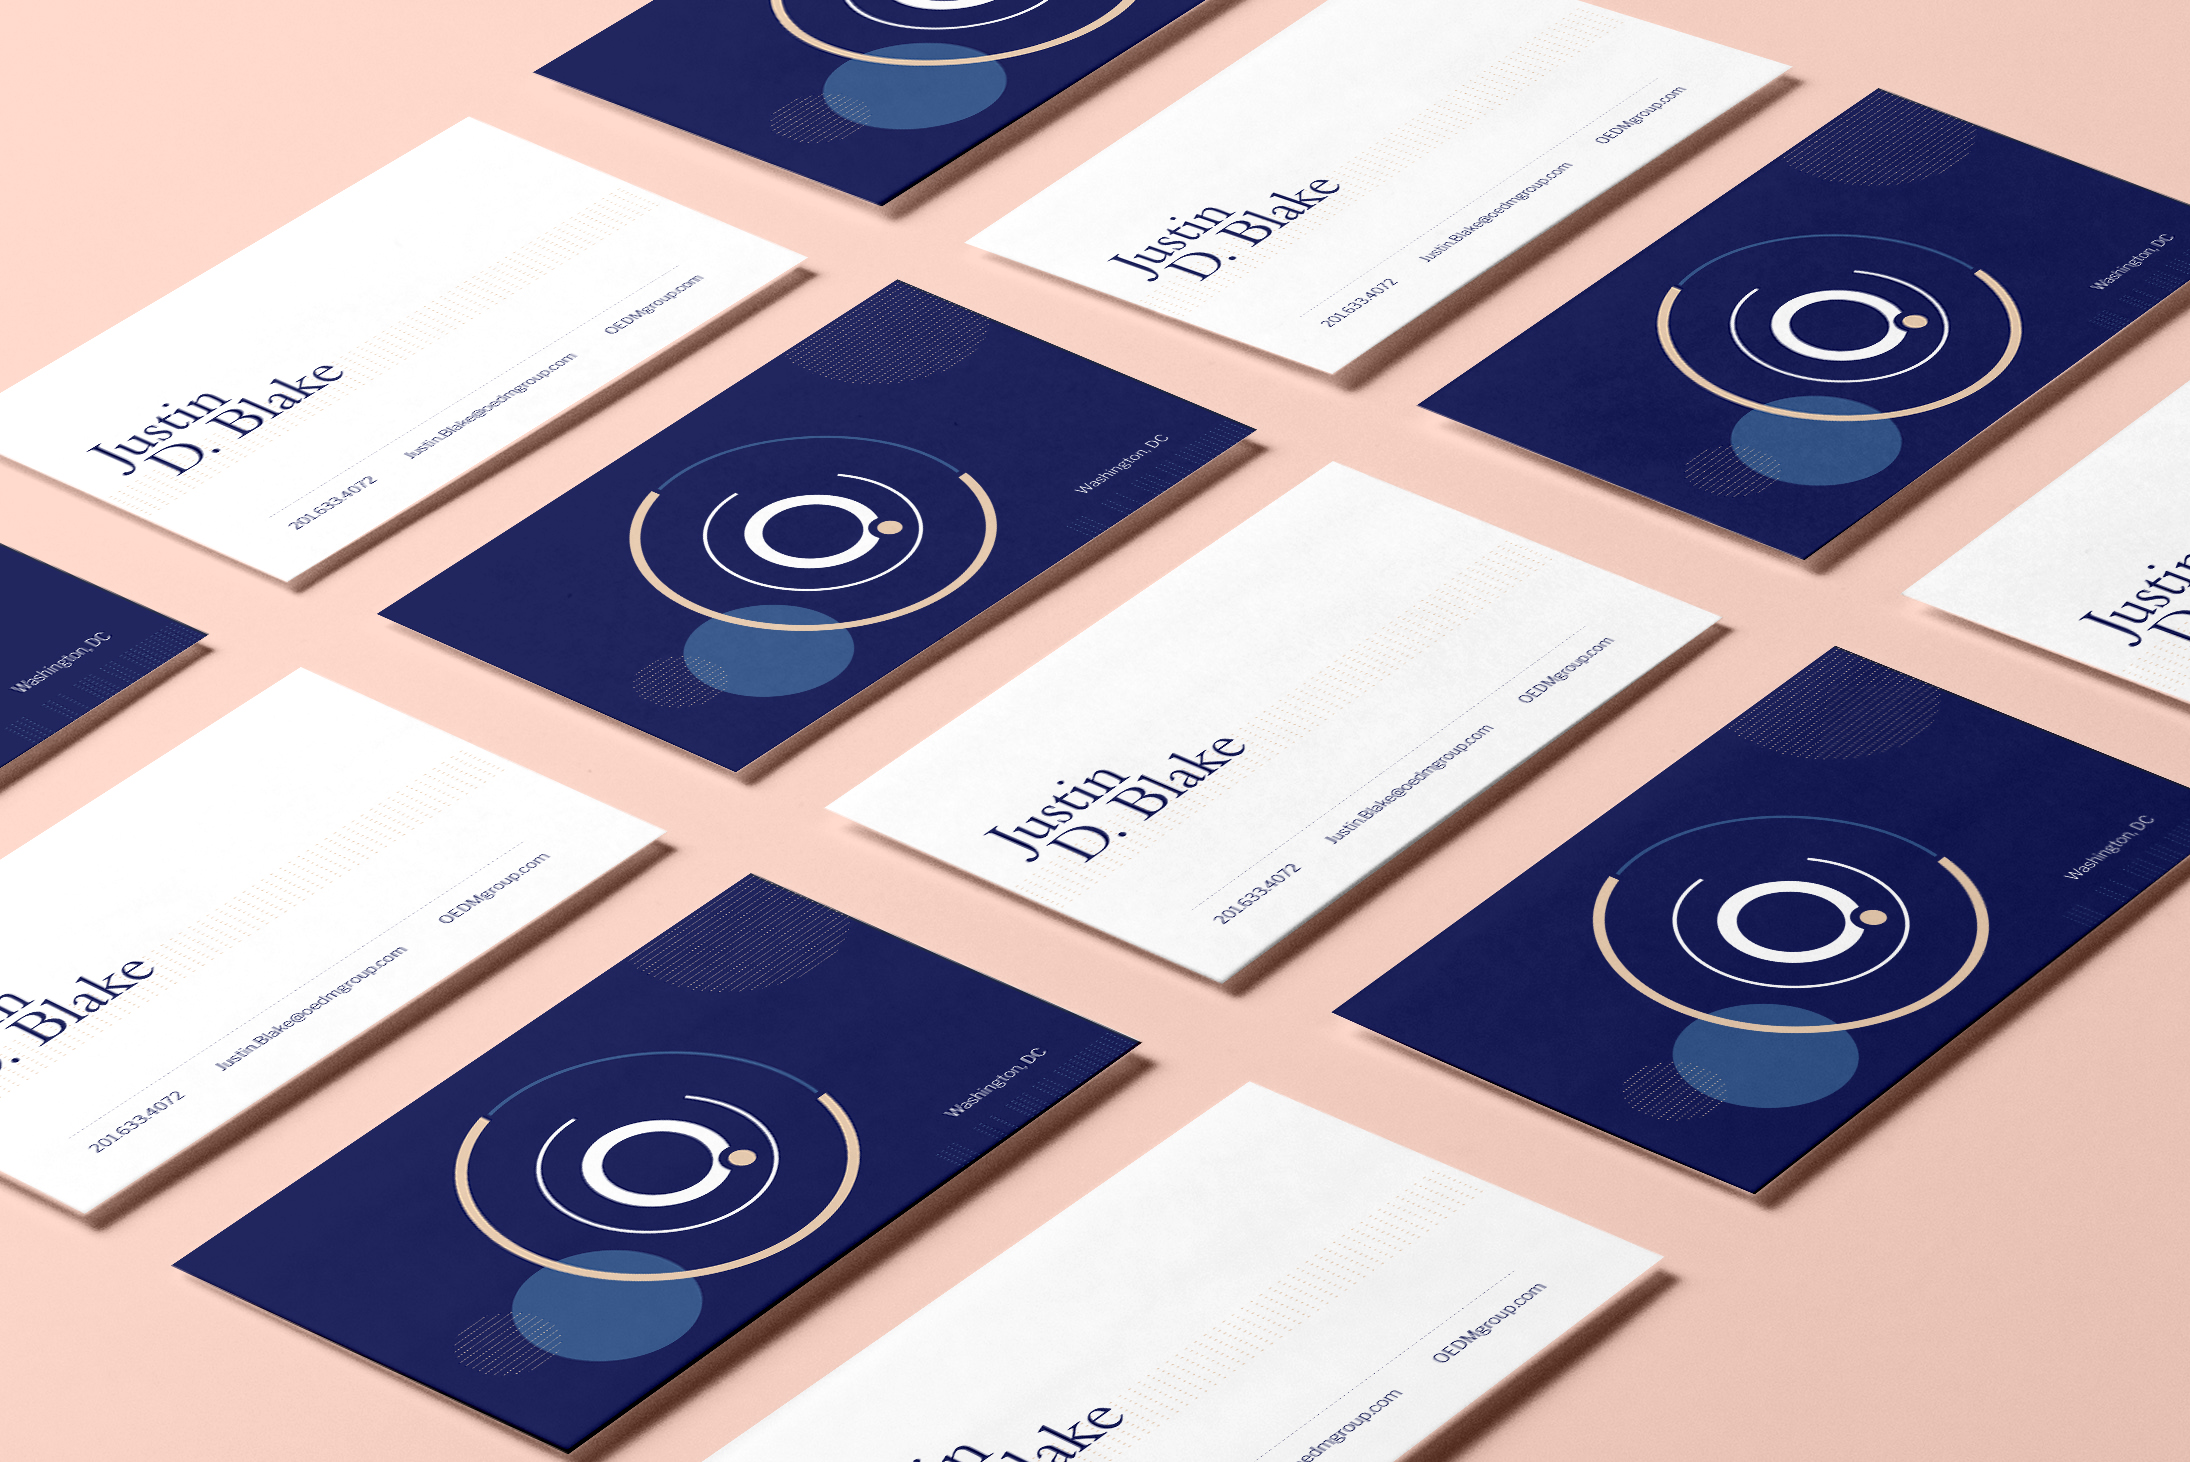 Oedm business card